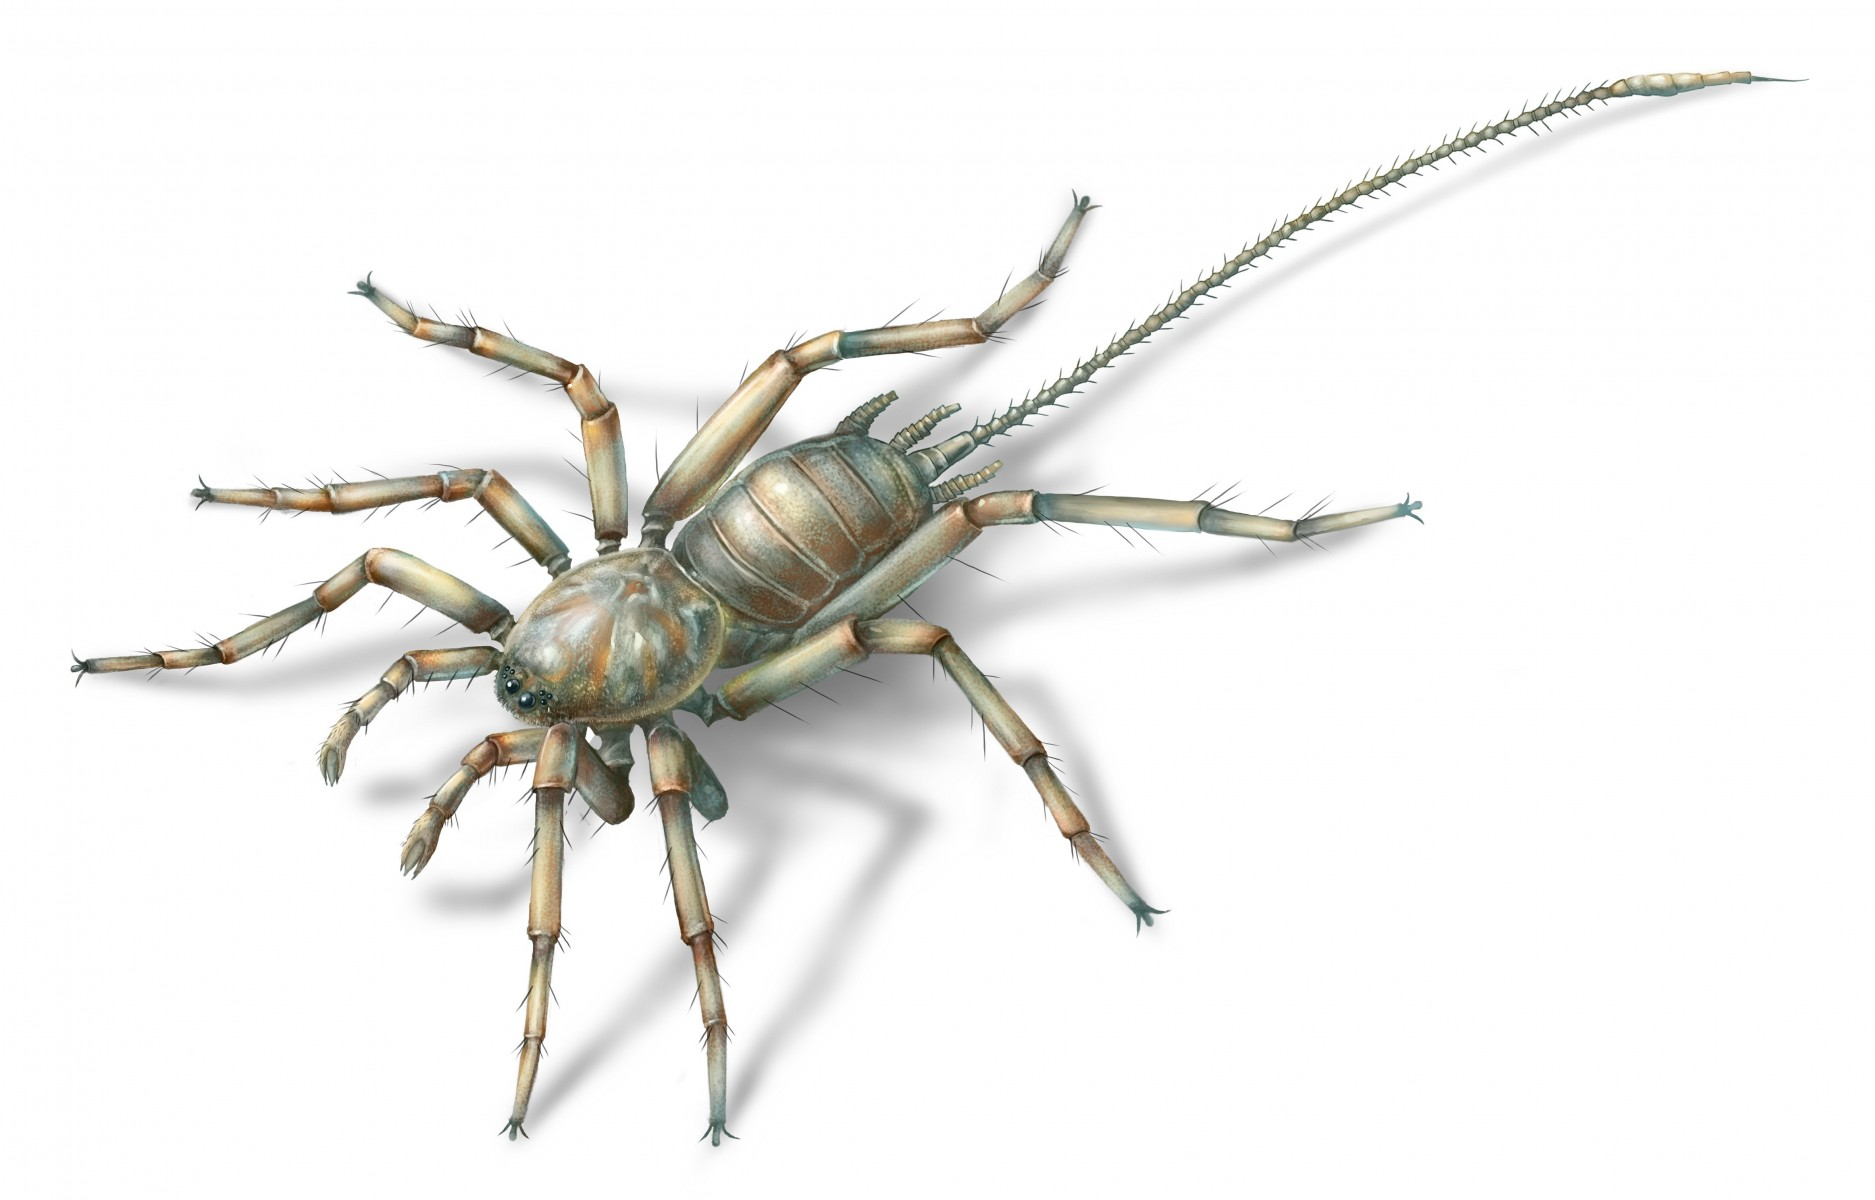 Artist's impression of Chimerarachne yingi